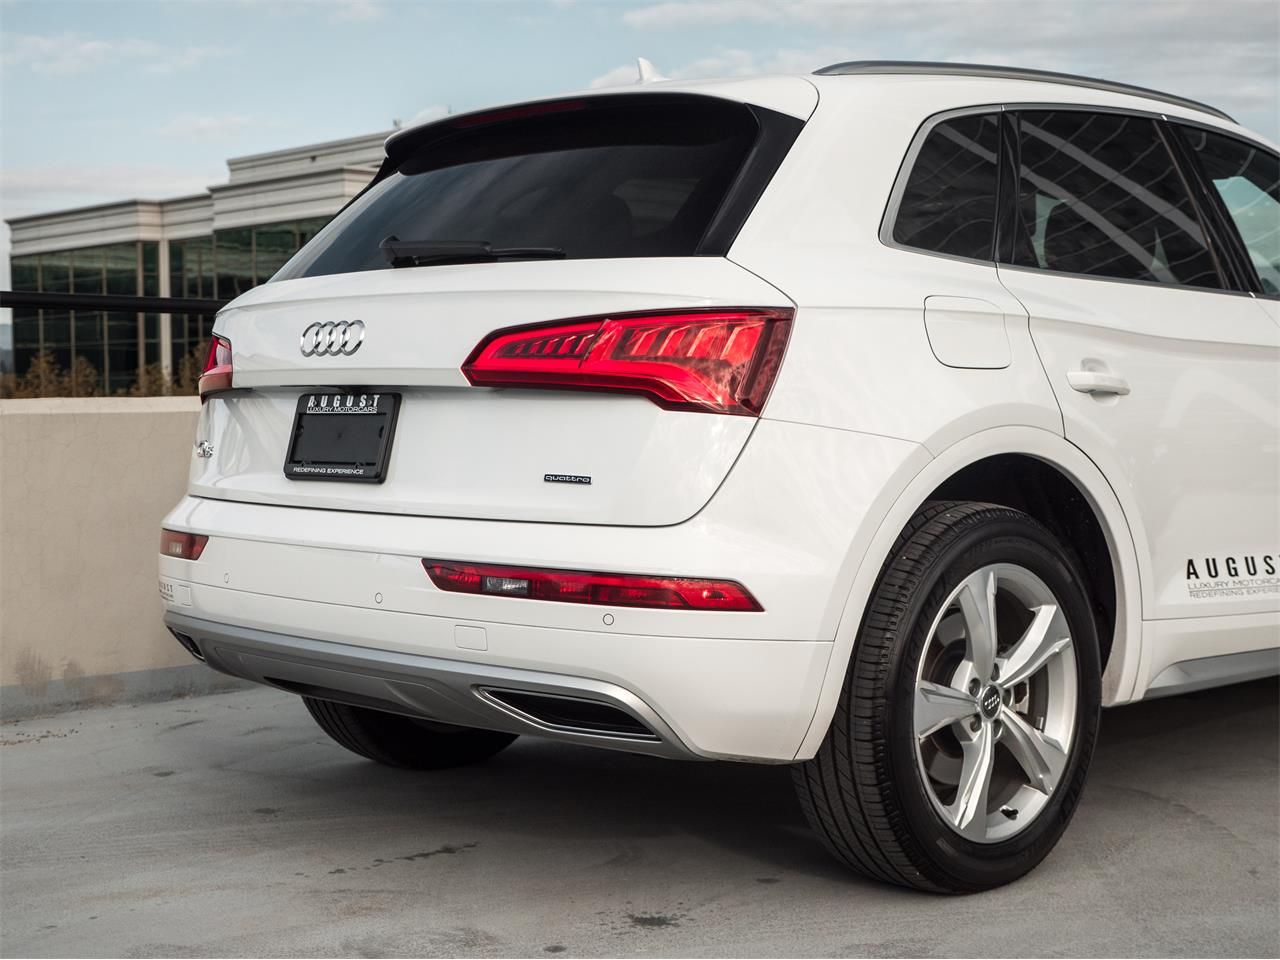 2019 Audi Q5 (CC-1292997) for sale in Kelowna, British Columbia